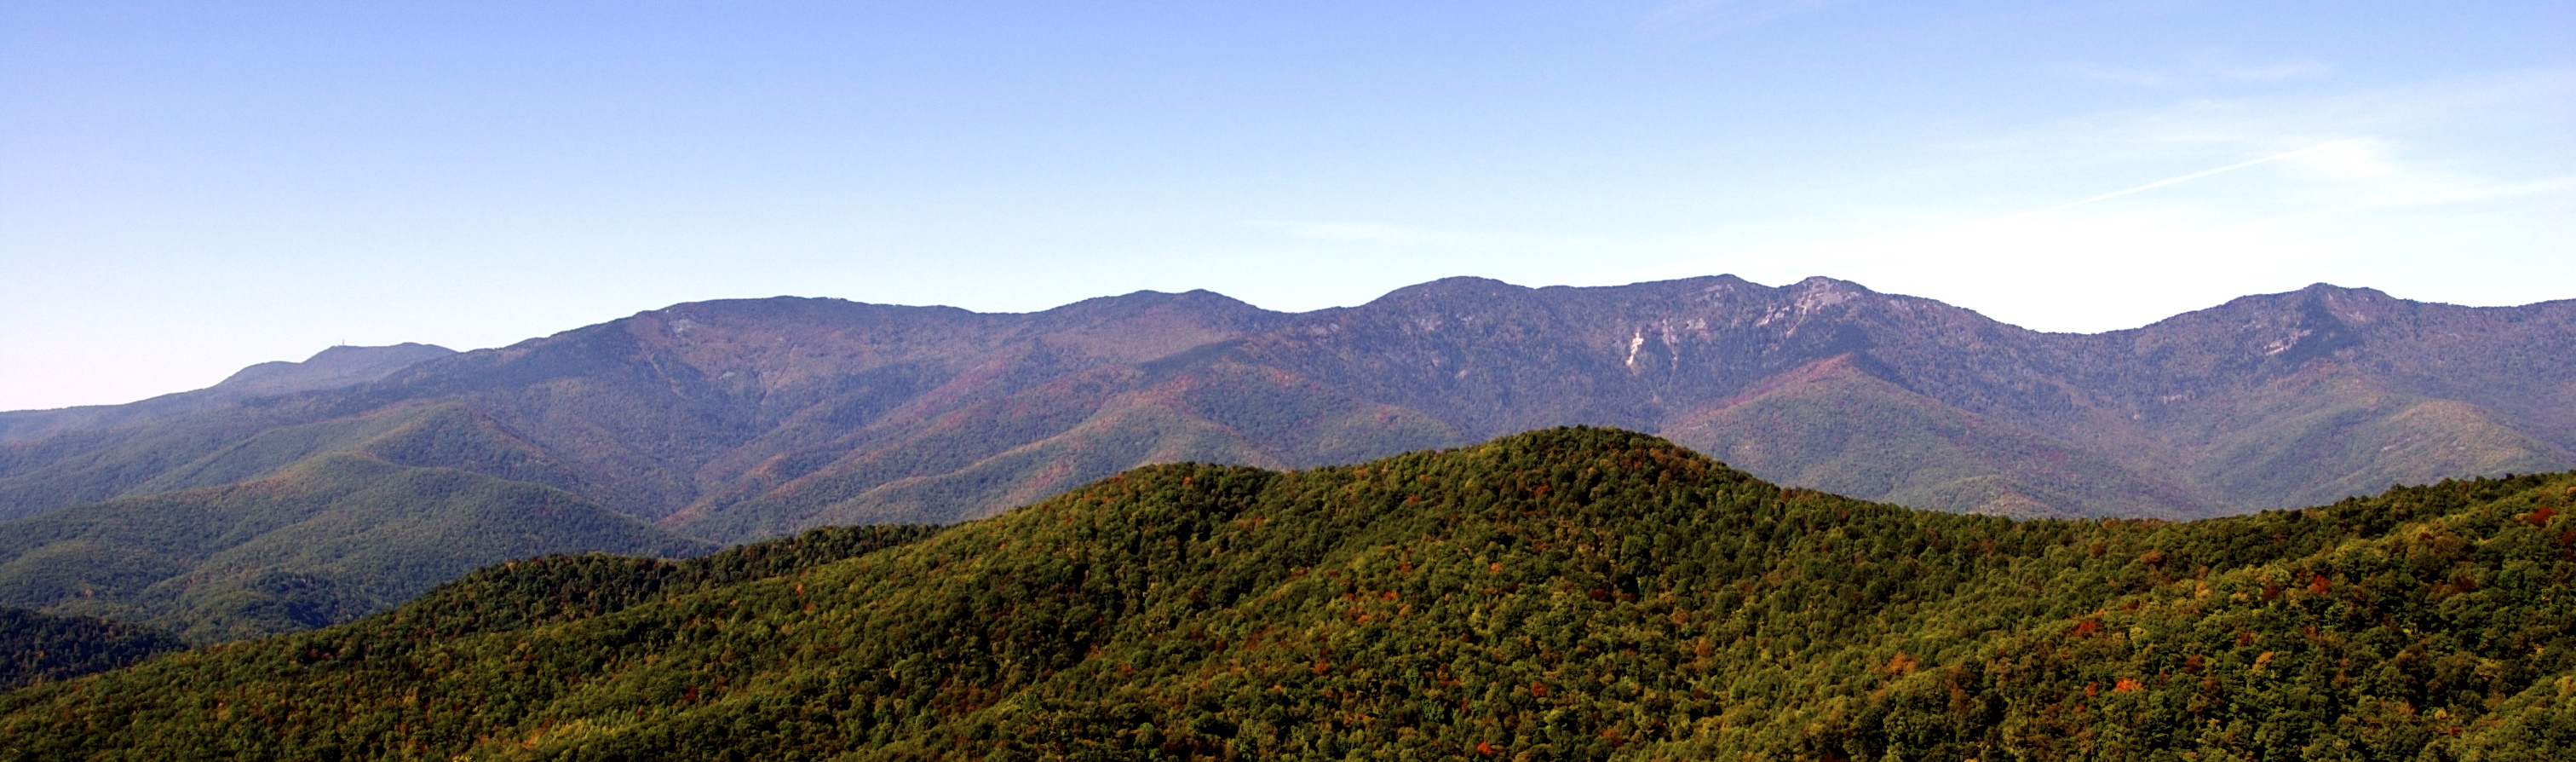 Pictures of black mountain range nc — pic 4